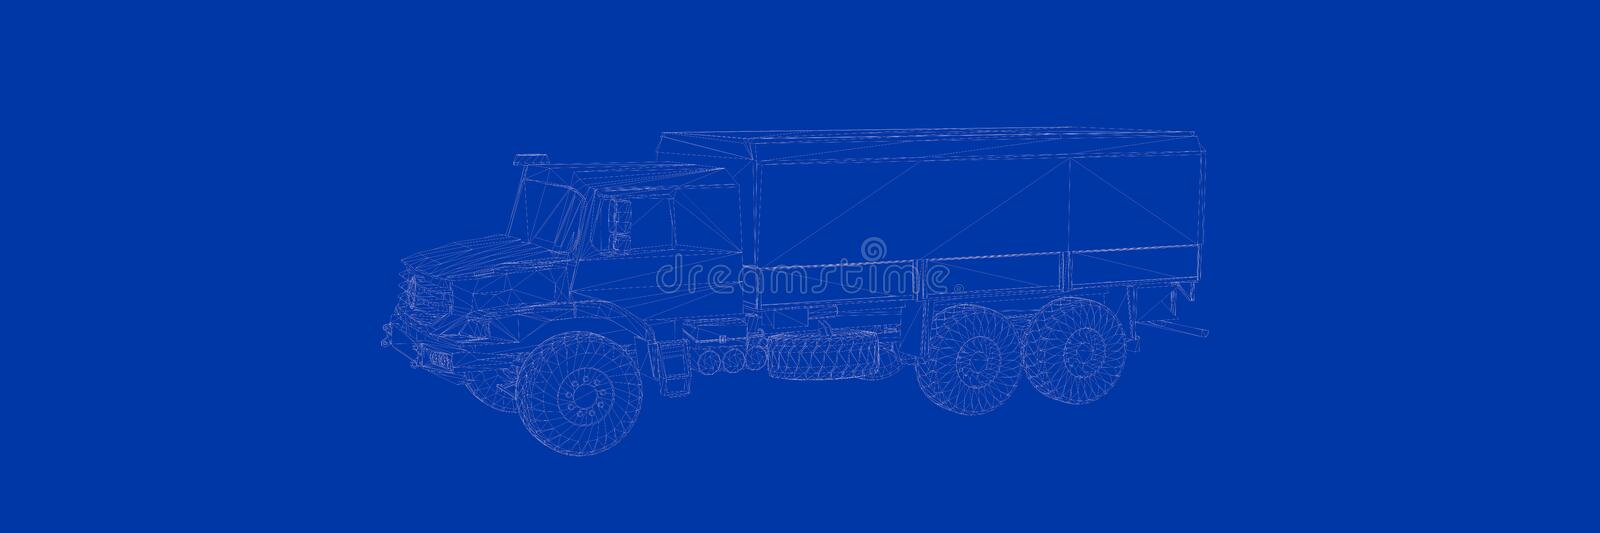 3d rendering of a truck on a blue background blueprint vector illustration